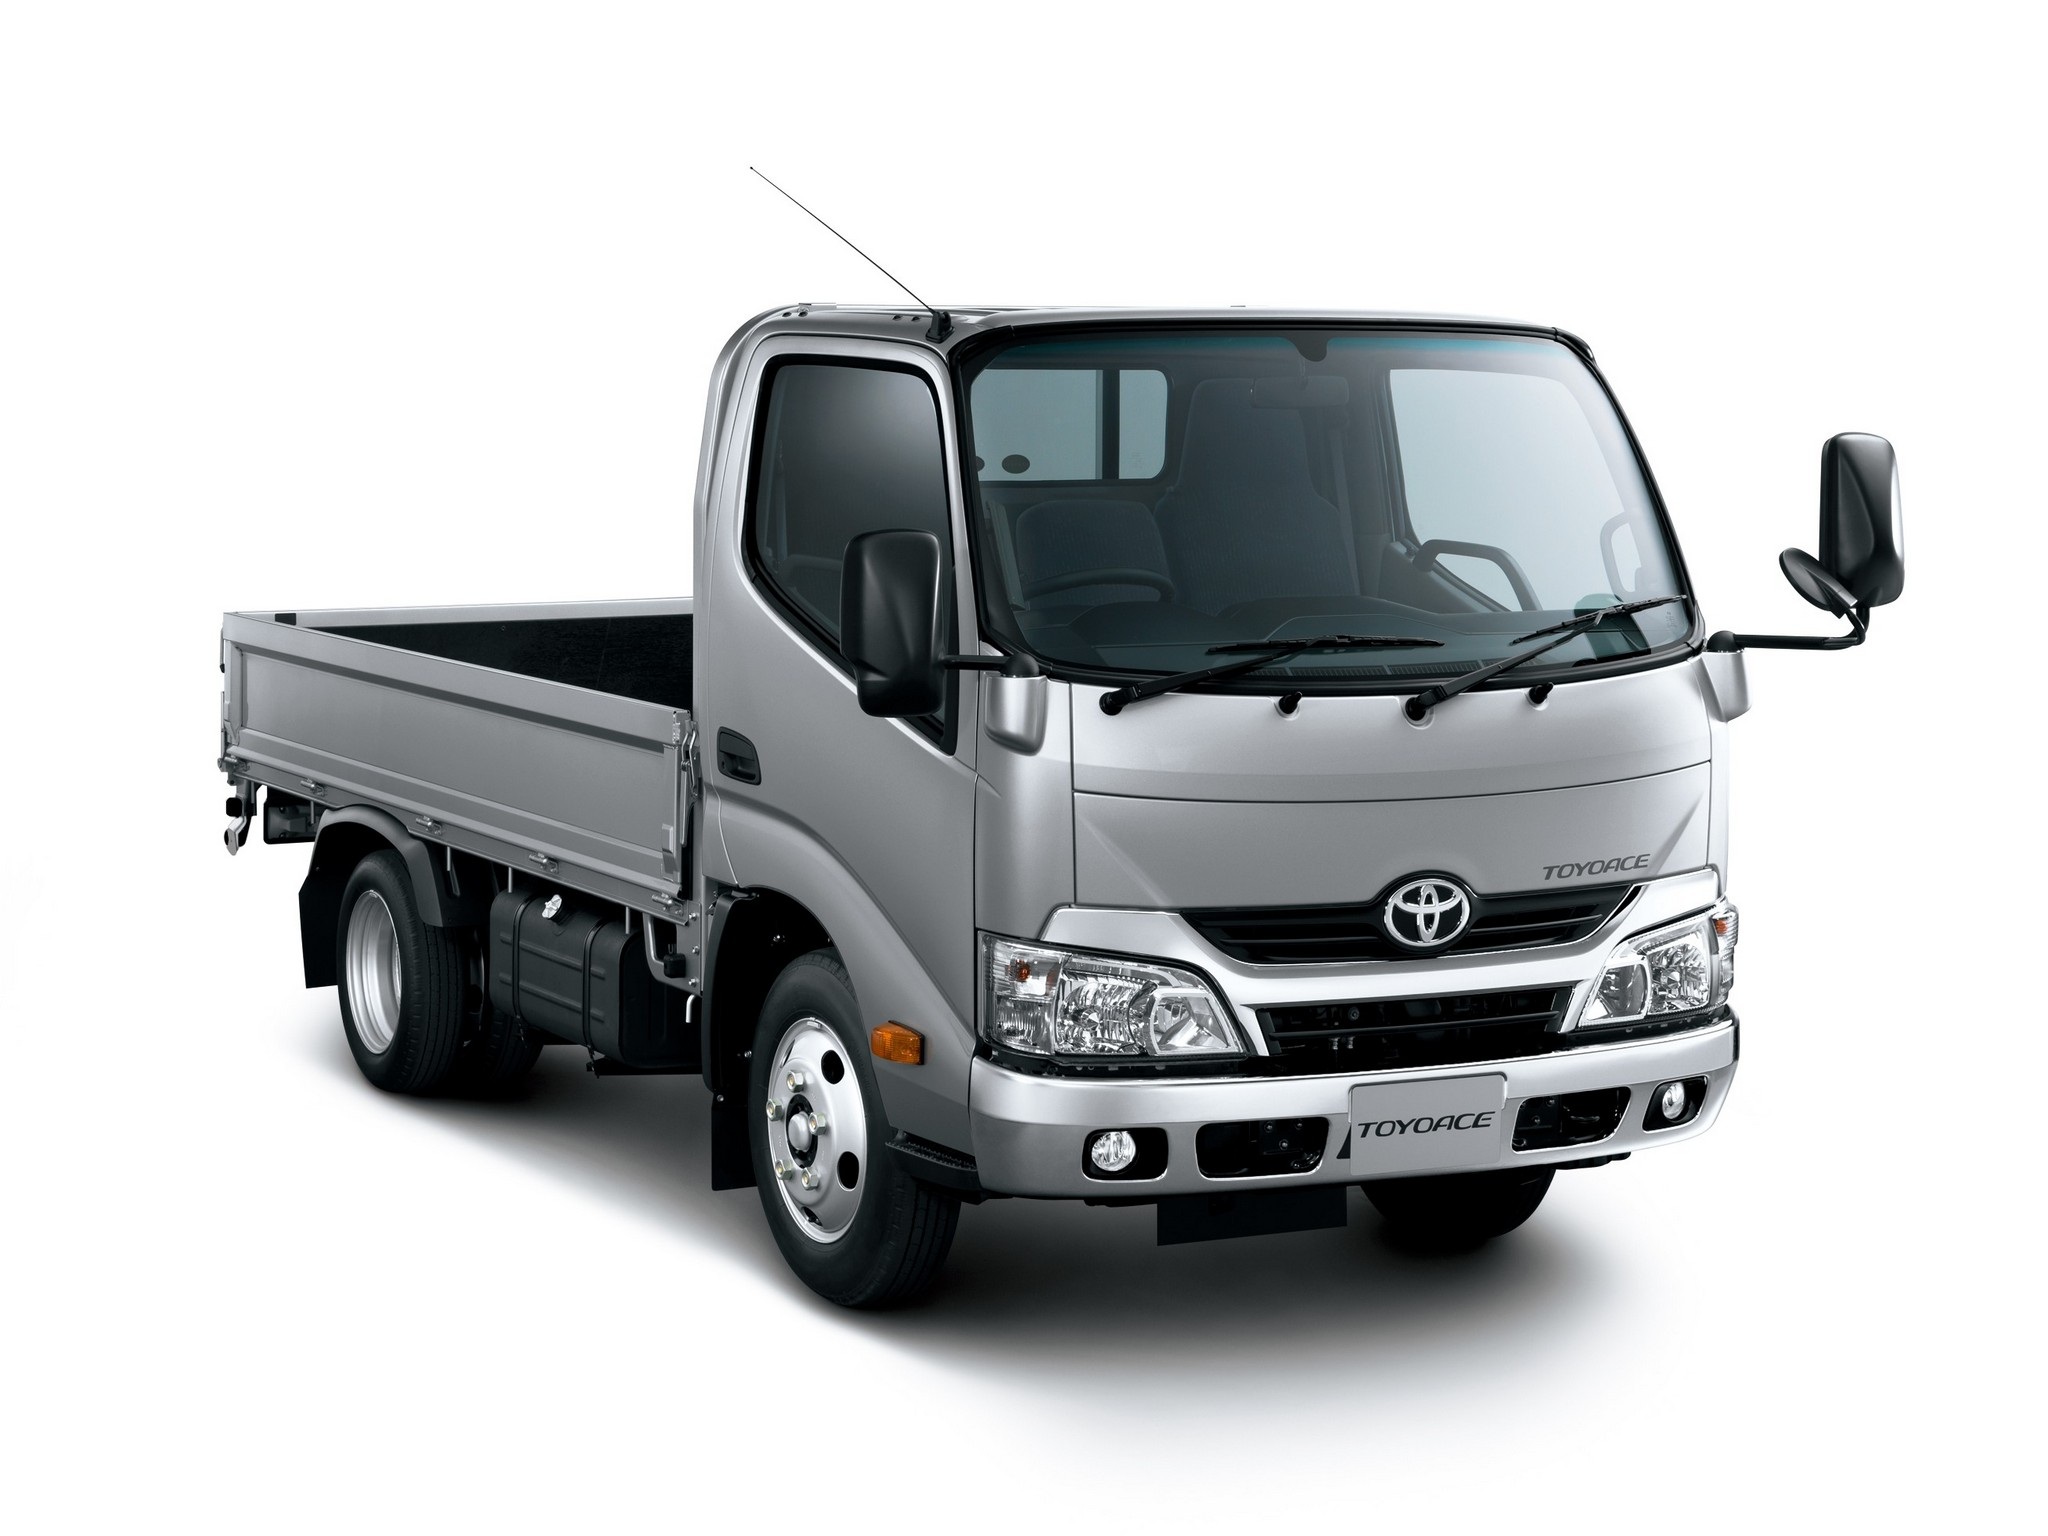 Toyota toyoace photo - 2